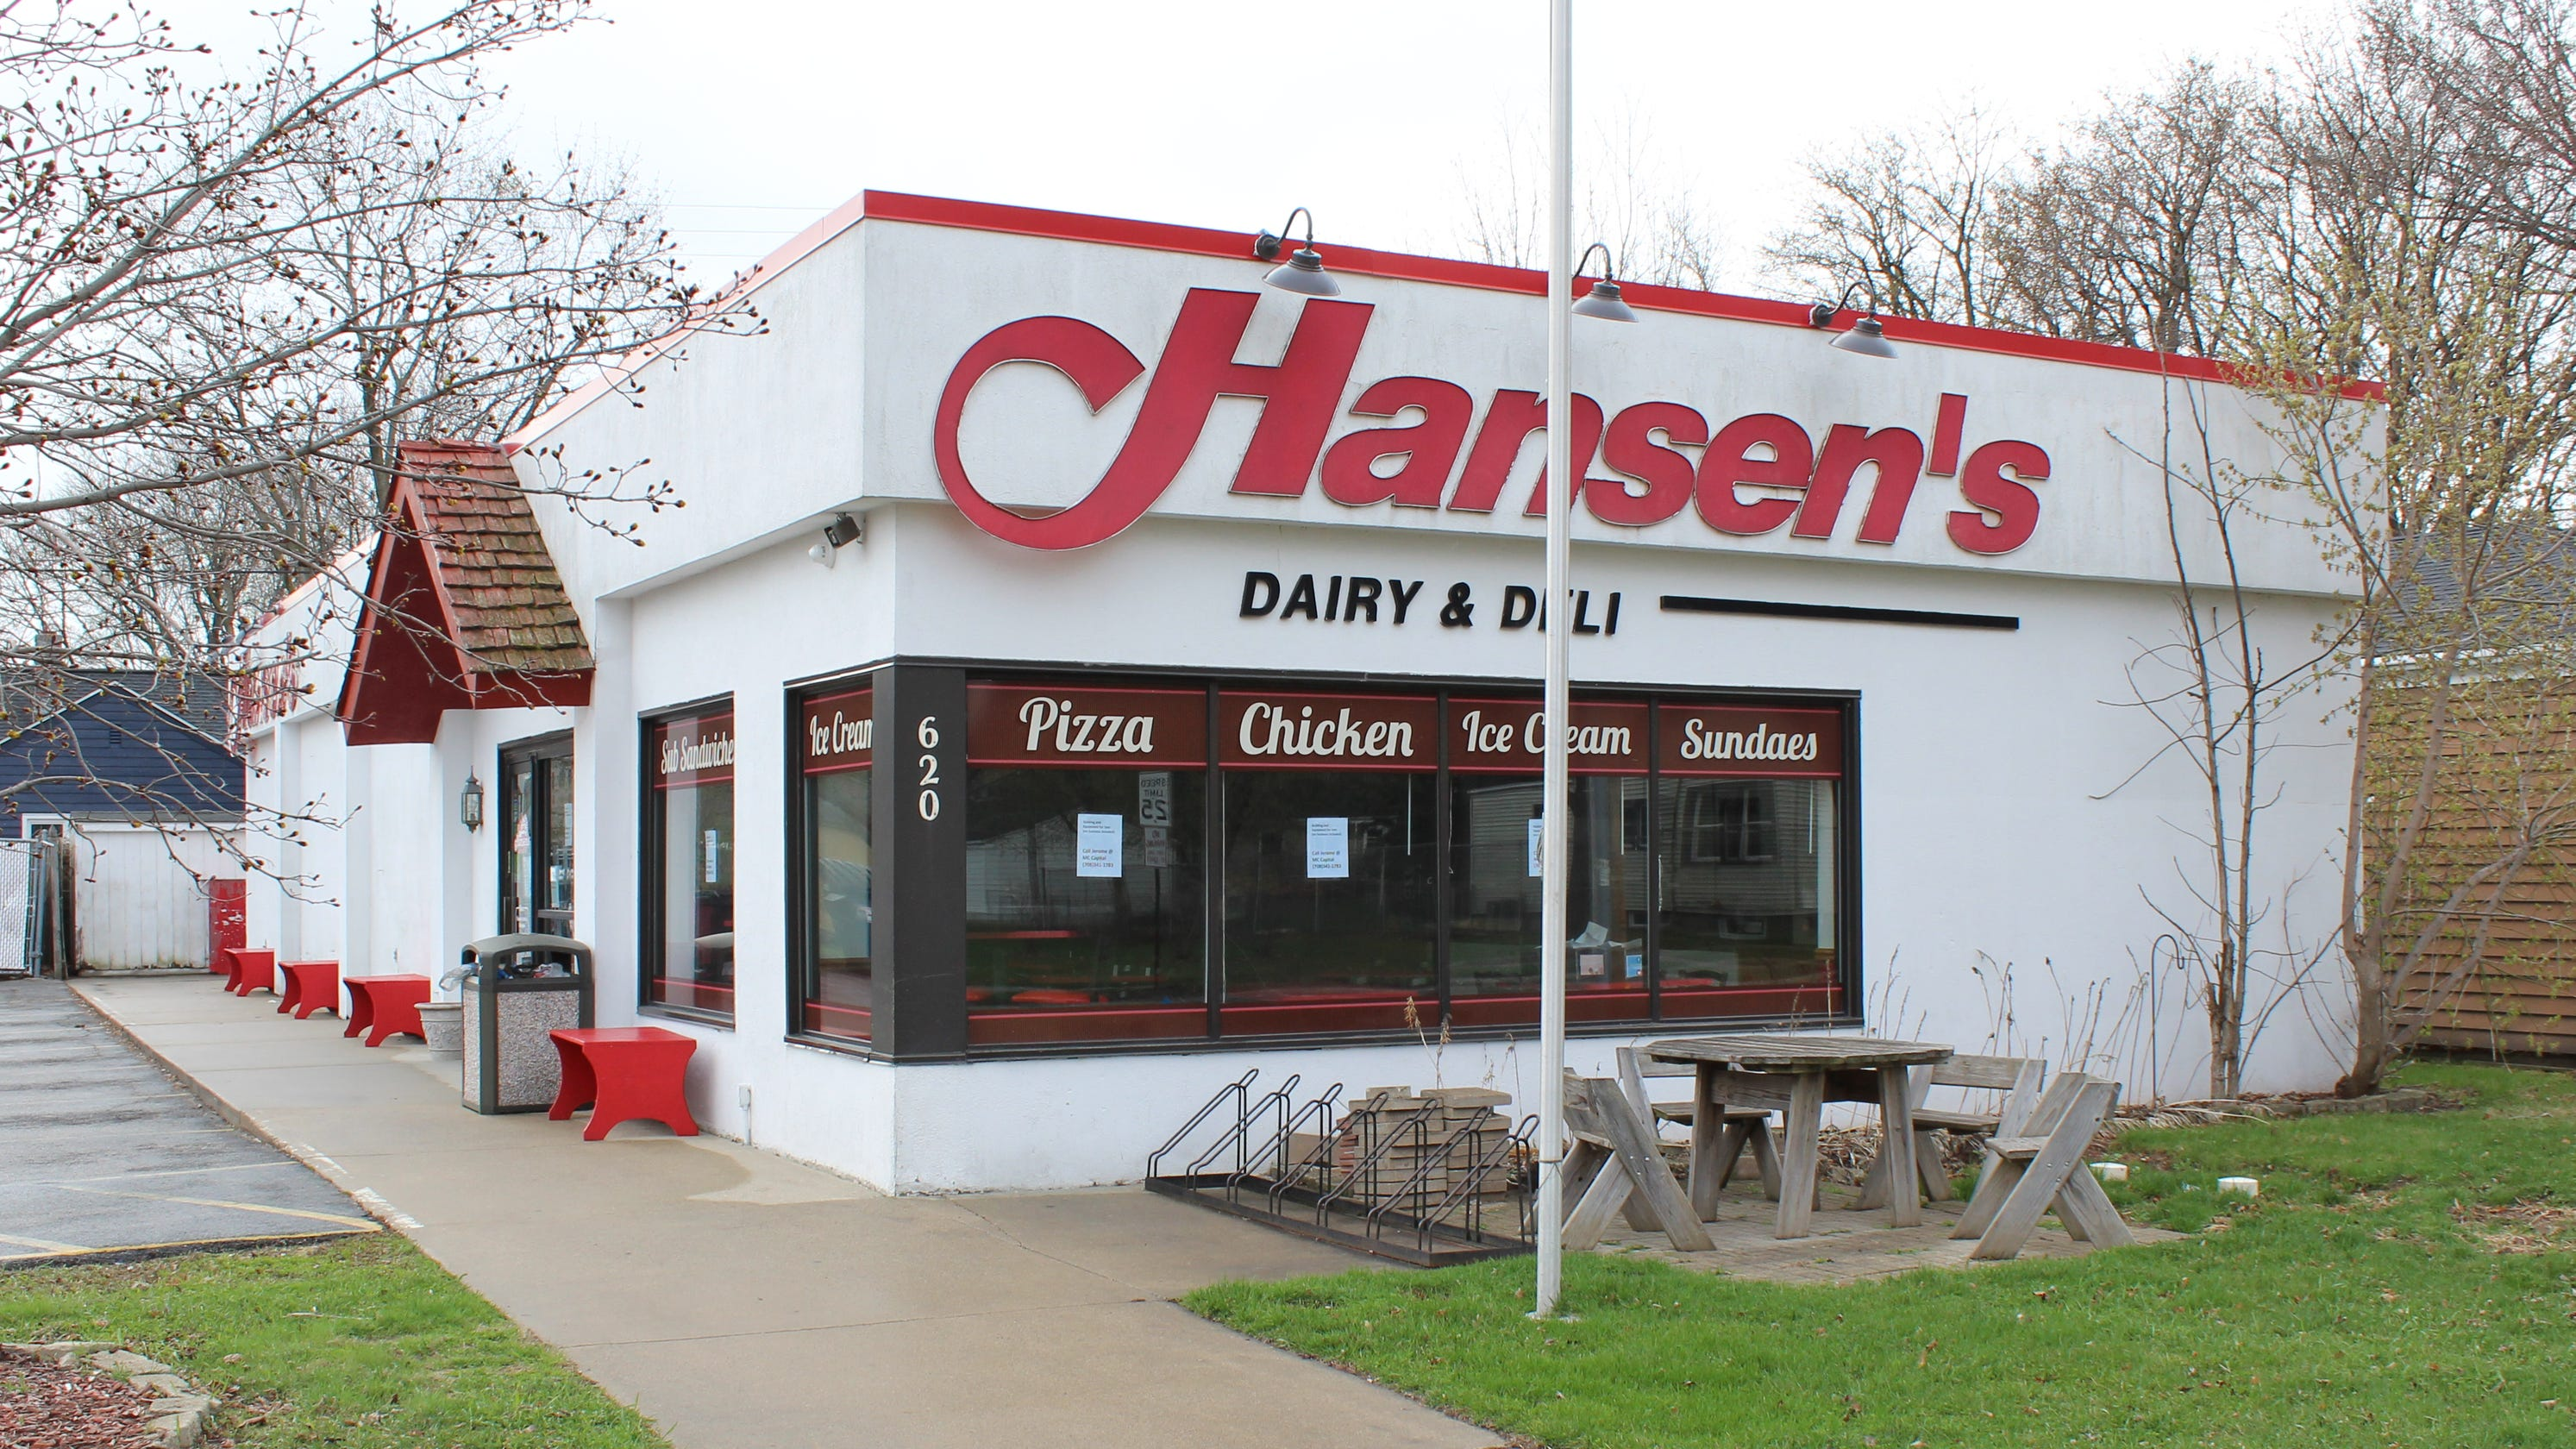 After more than 60 years in Green Bay, Hansen's Dairy and Deli closed | Streetwise